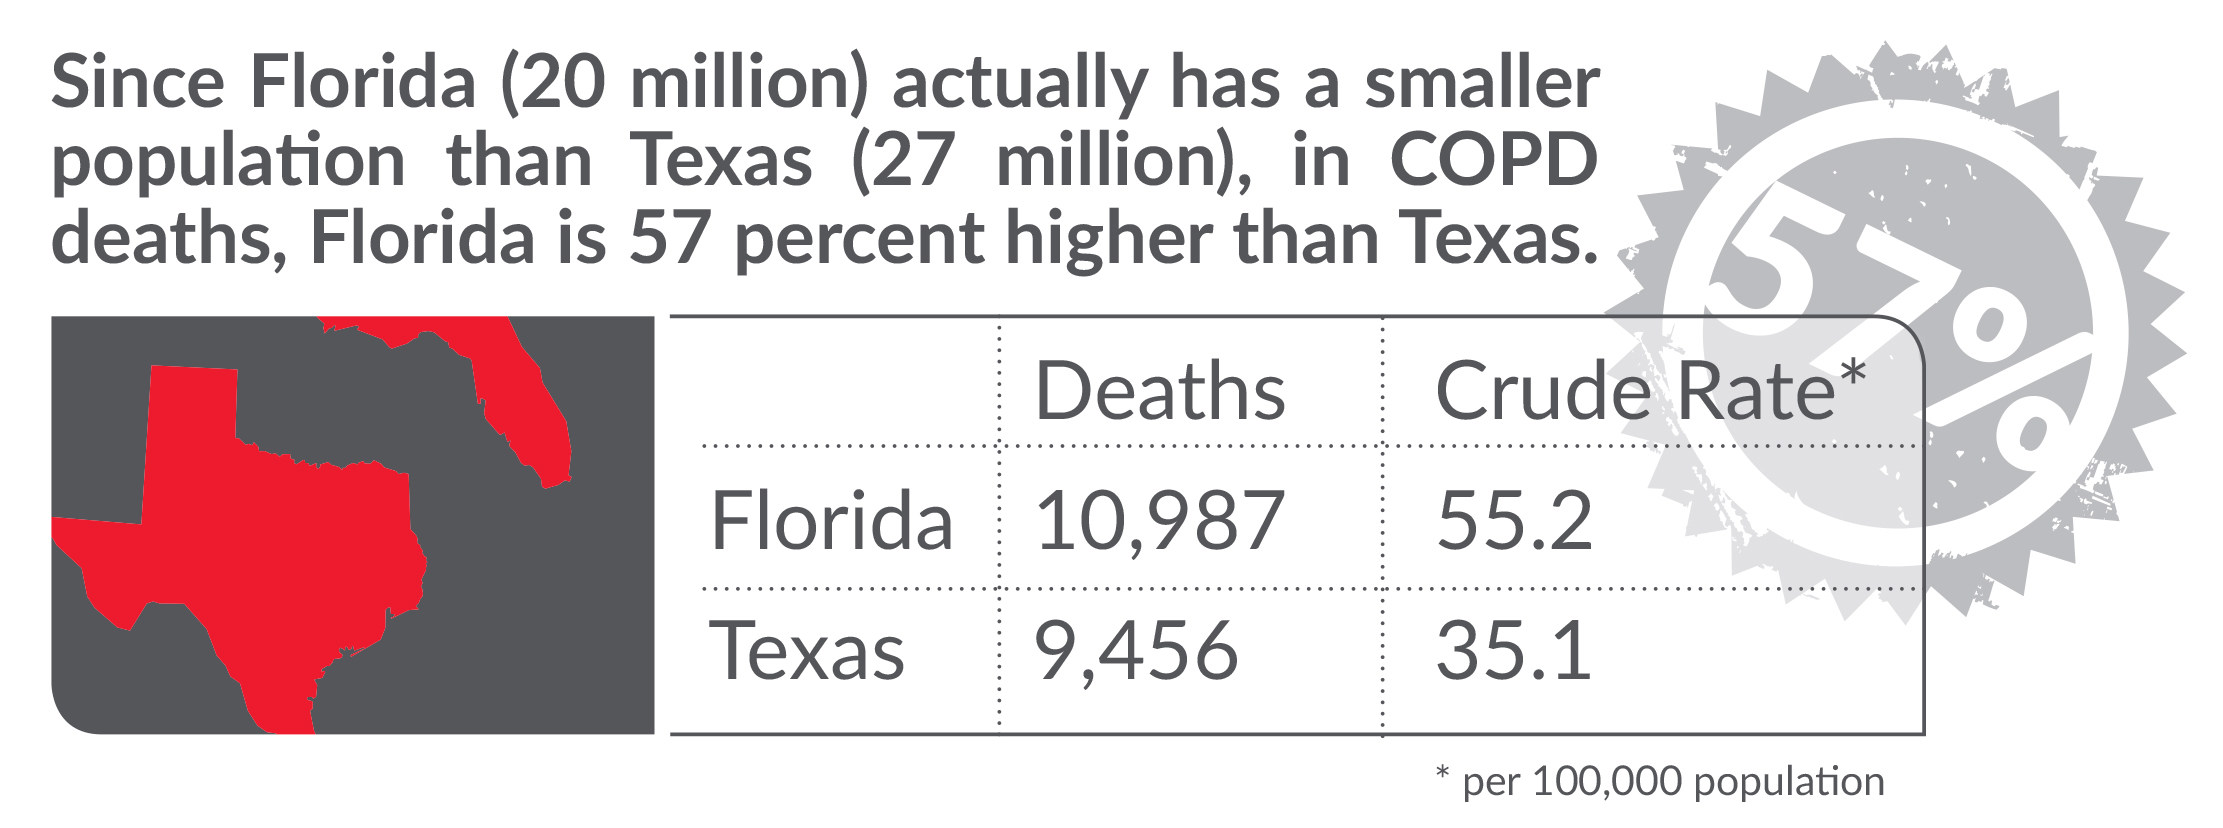 Graph comparing COPD death rates for Texas and Florida